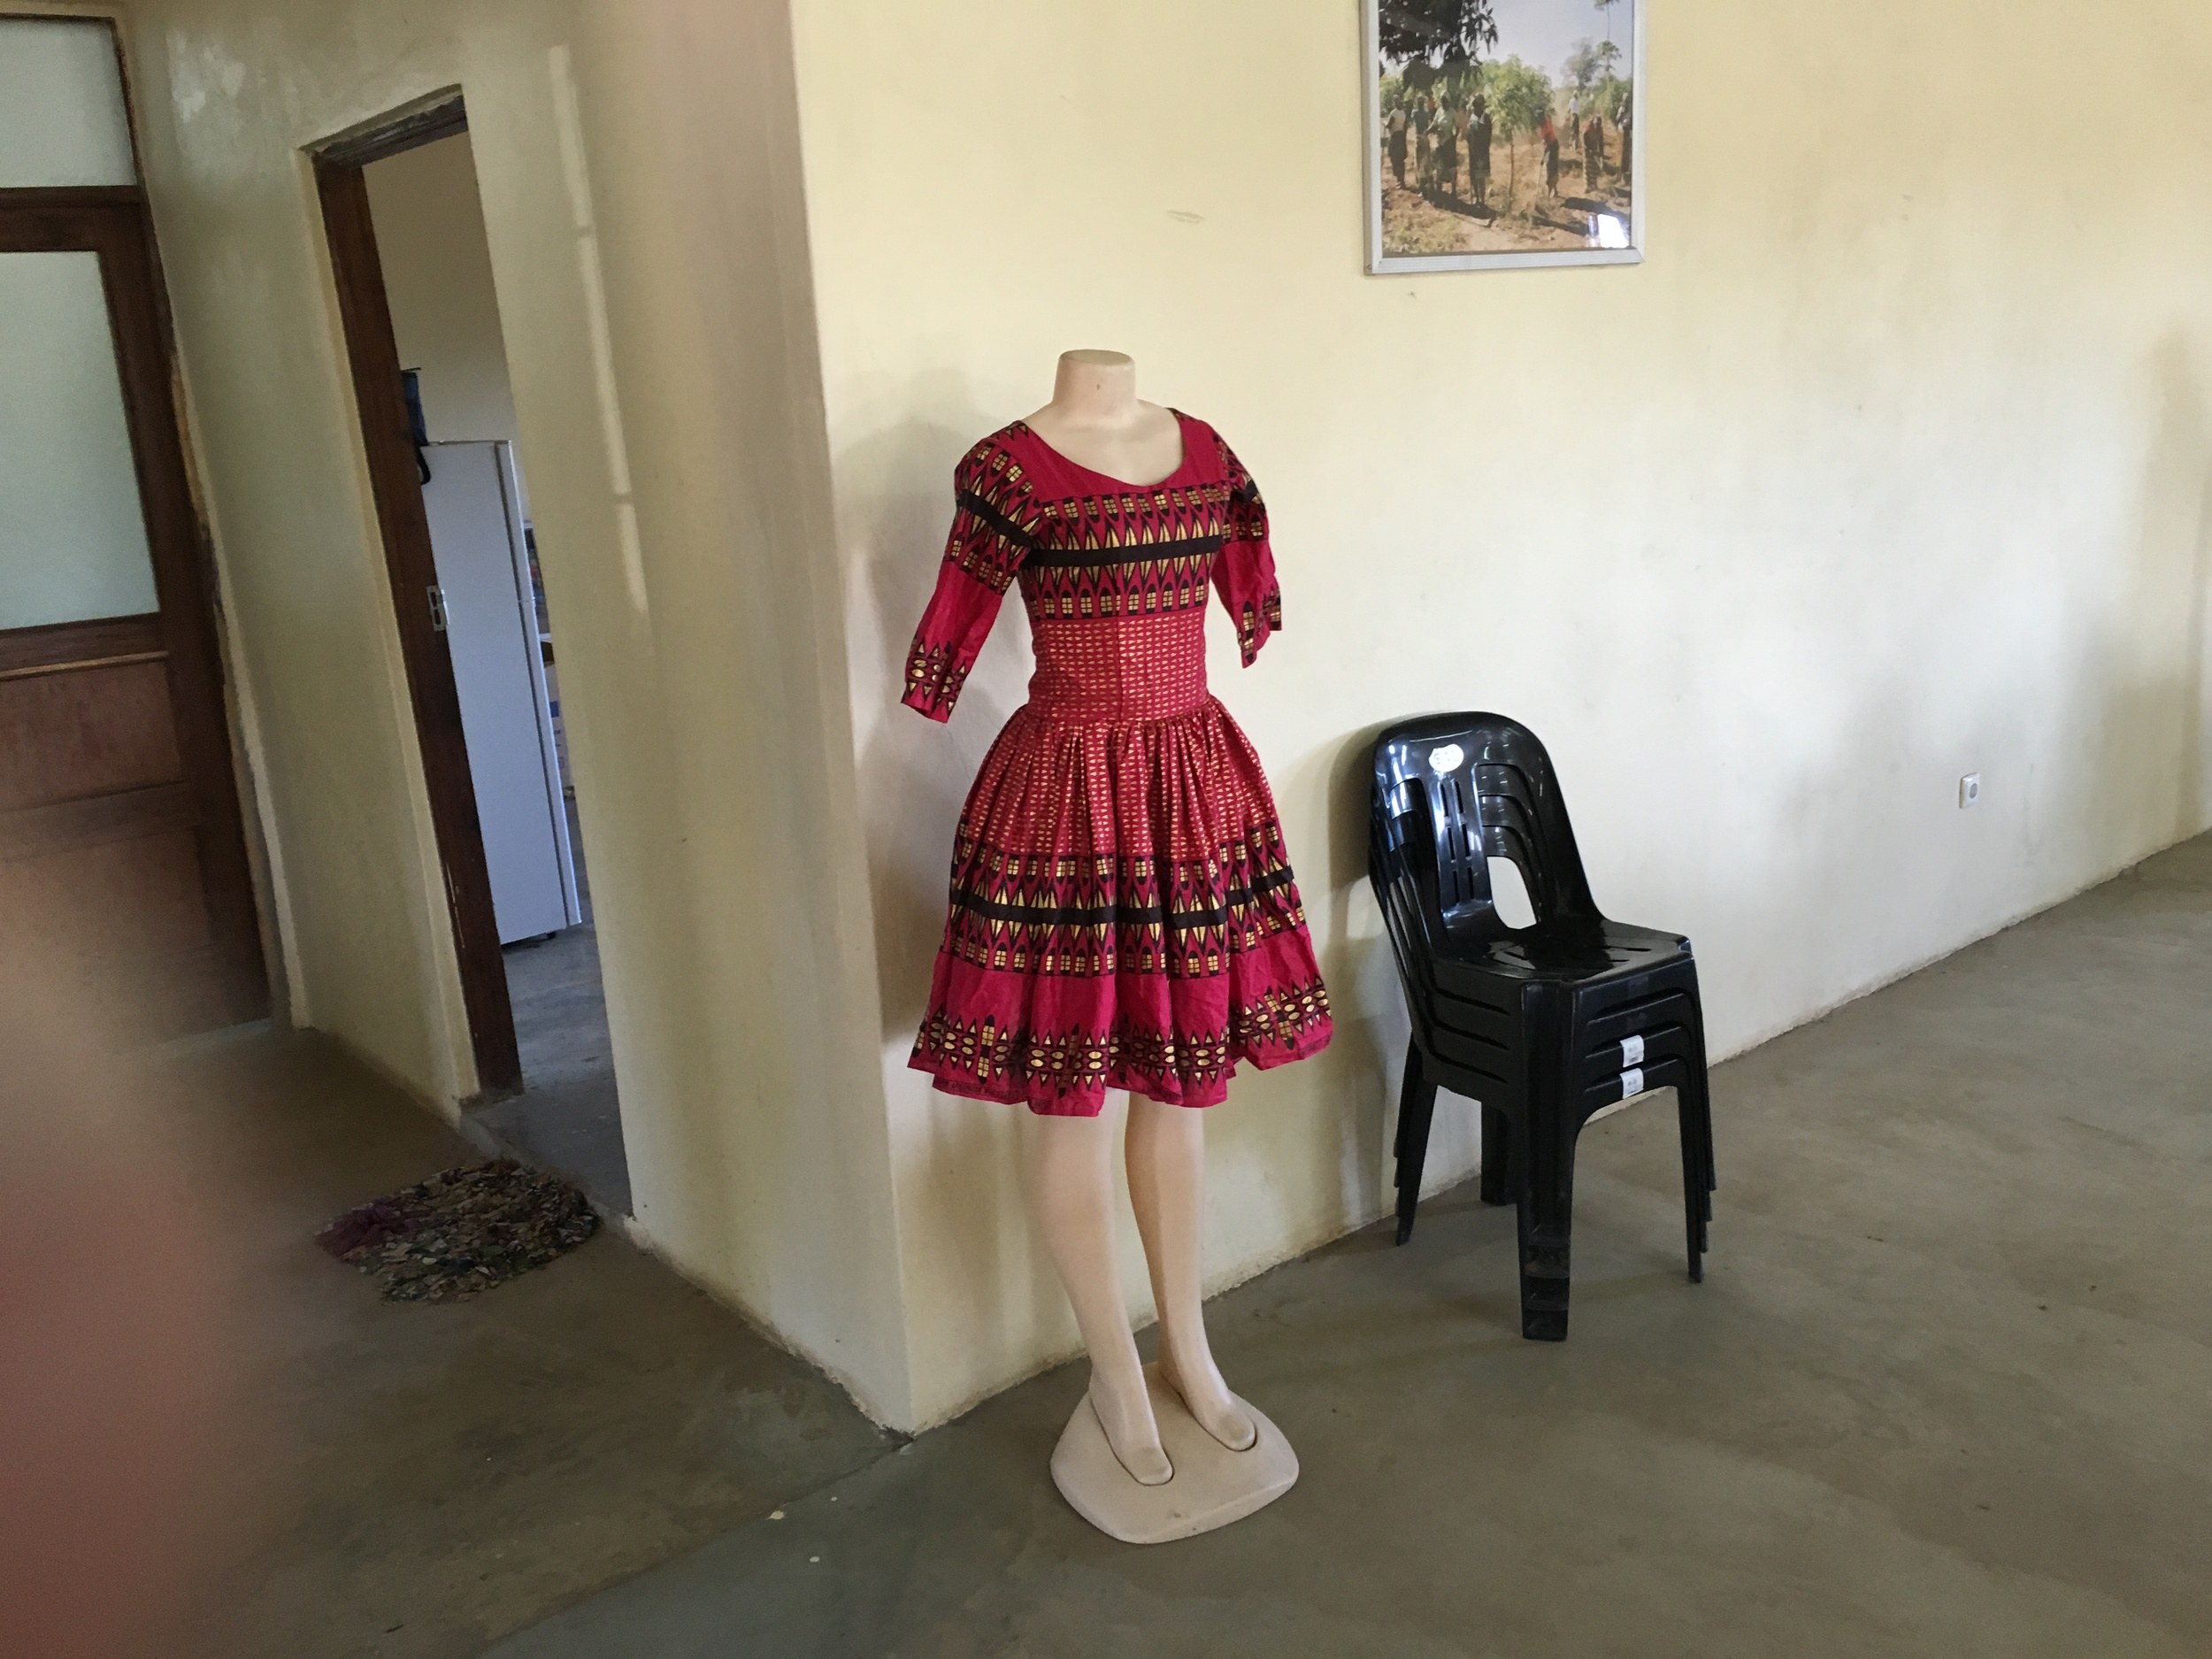 Another dress made by a student in Boane.